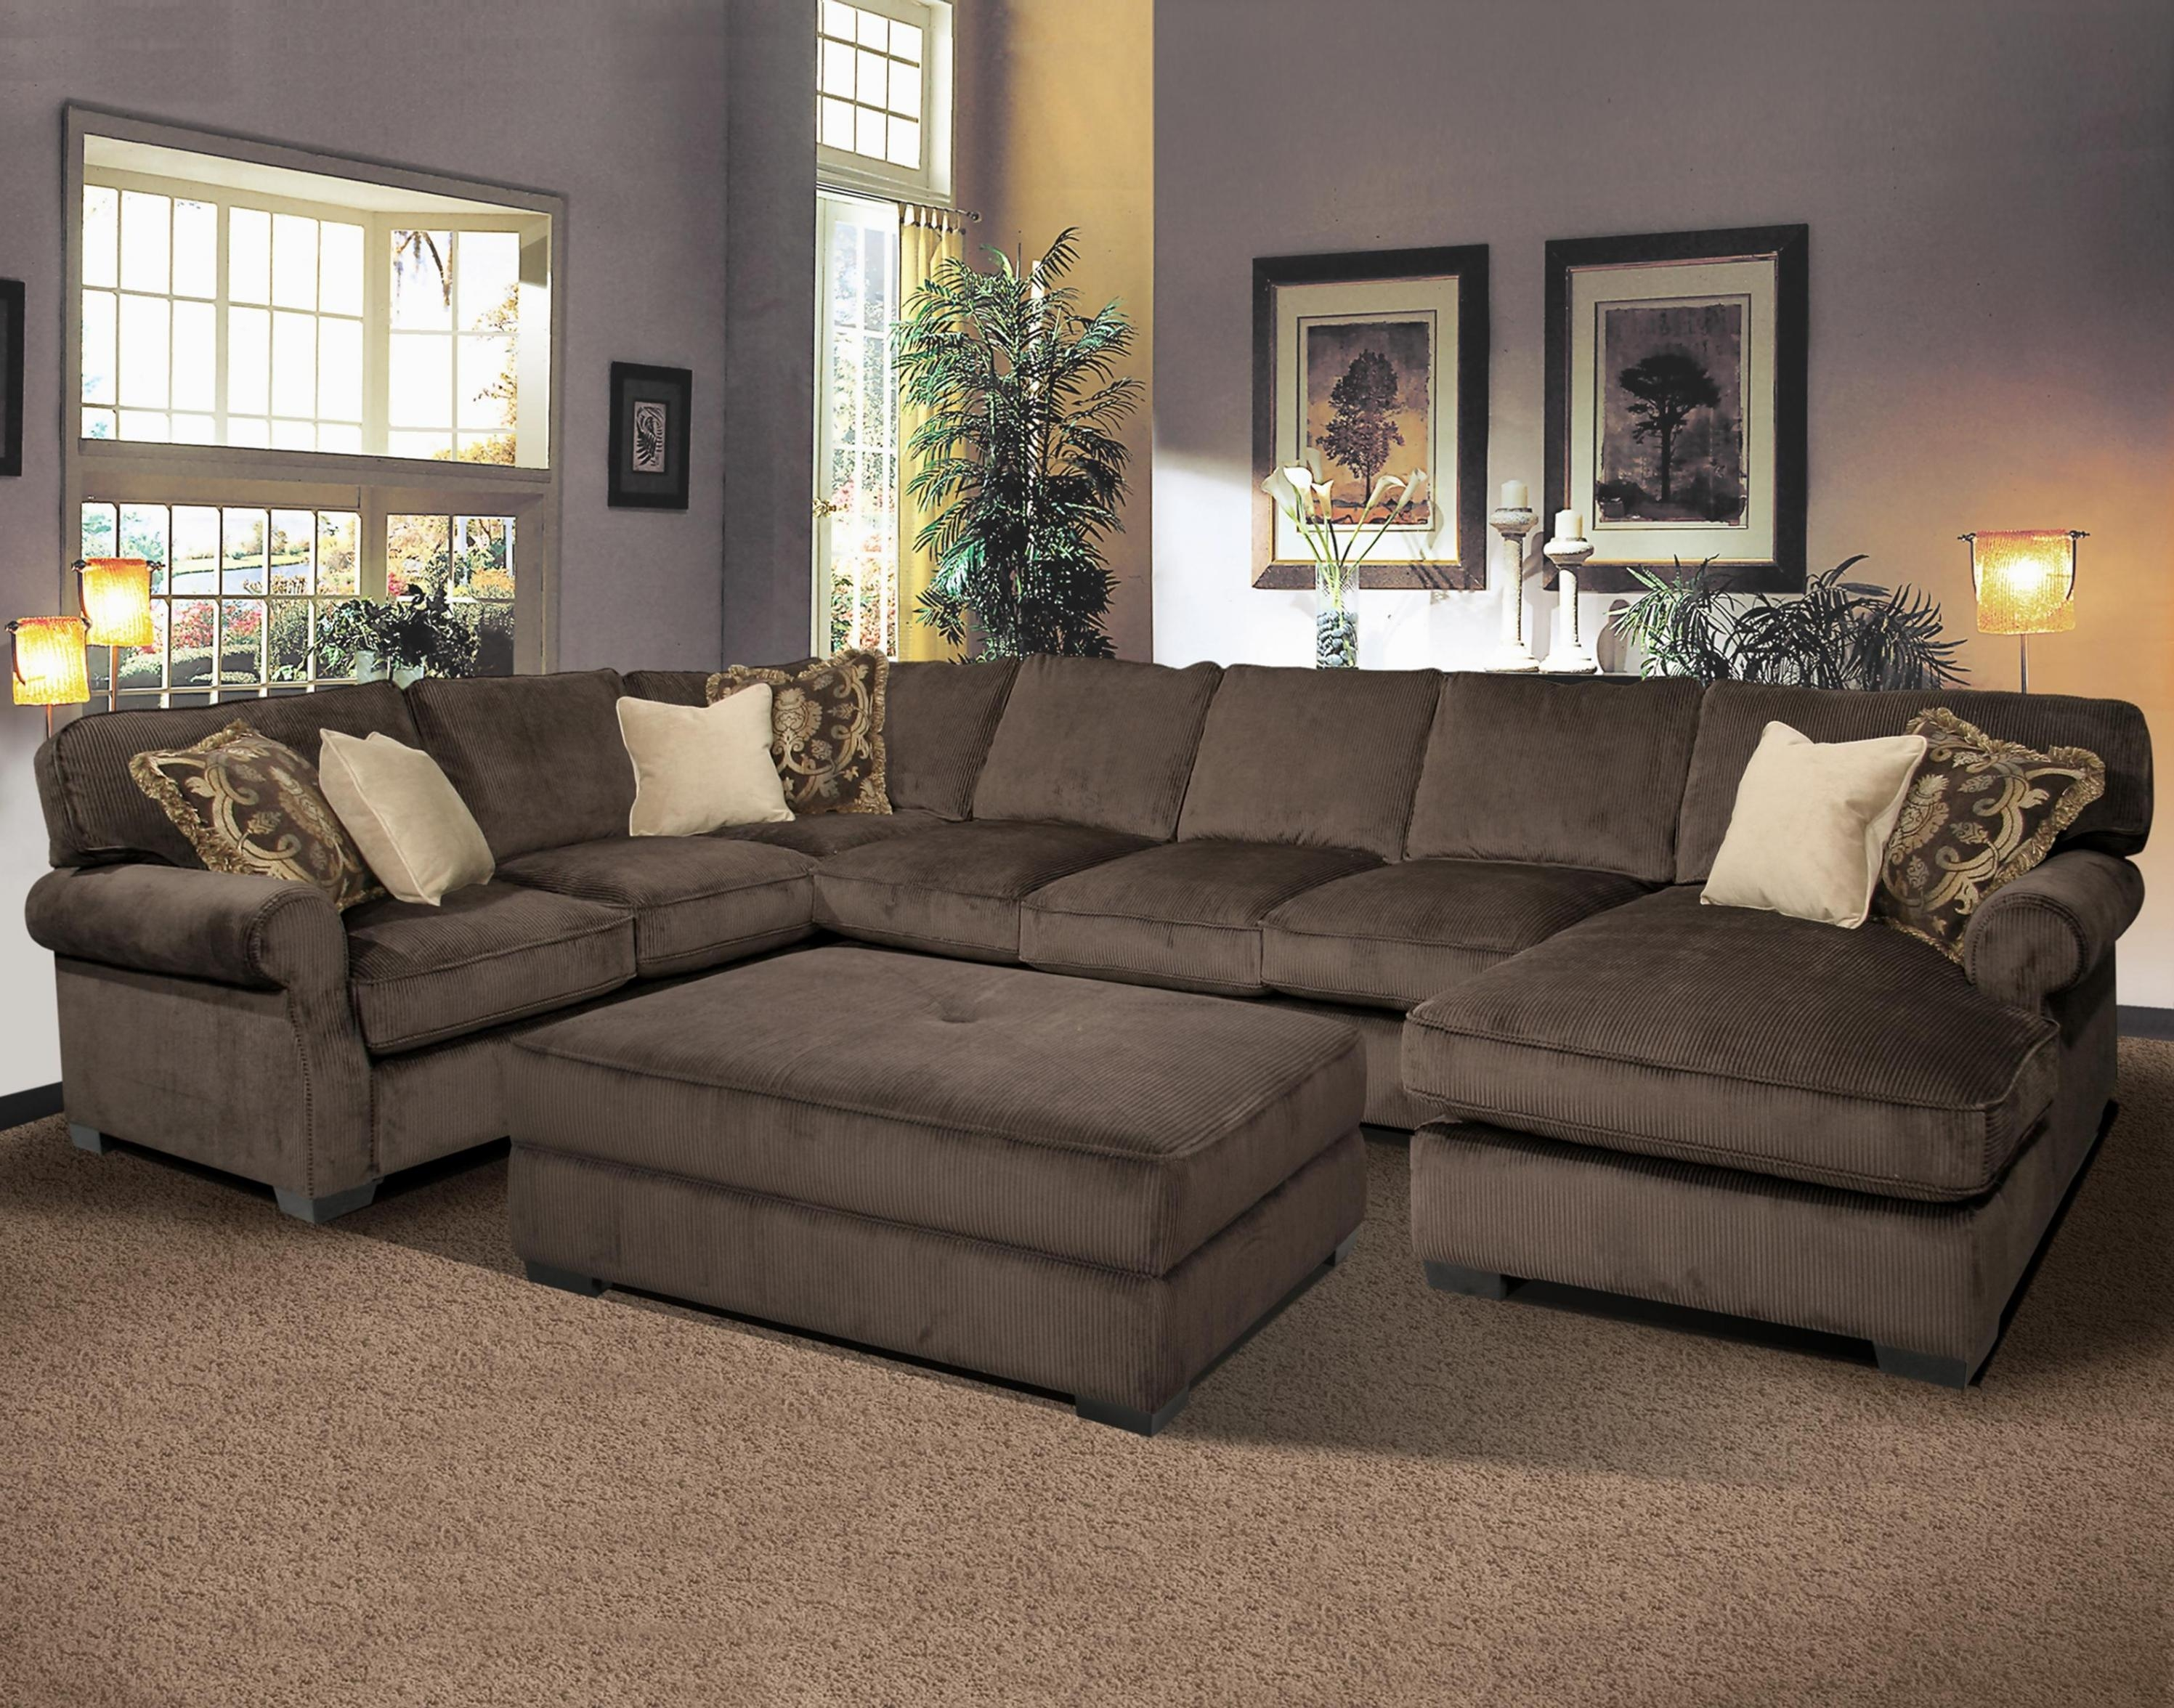 20 Collection of Sectional With Ottoman and Chaise | Sofa ...